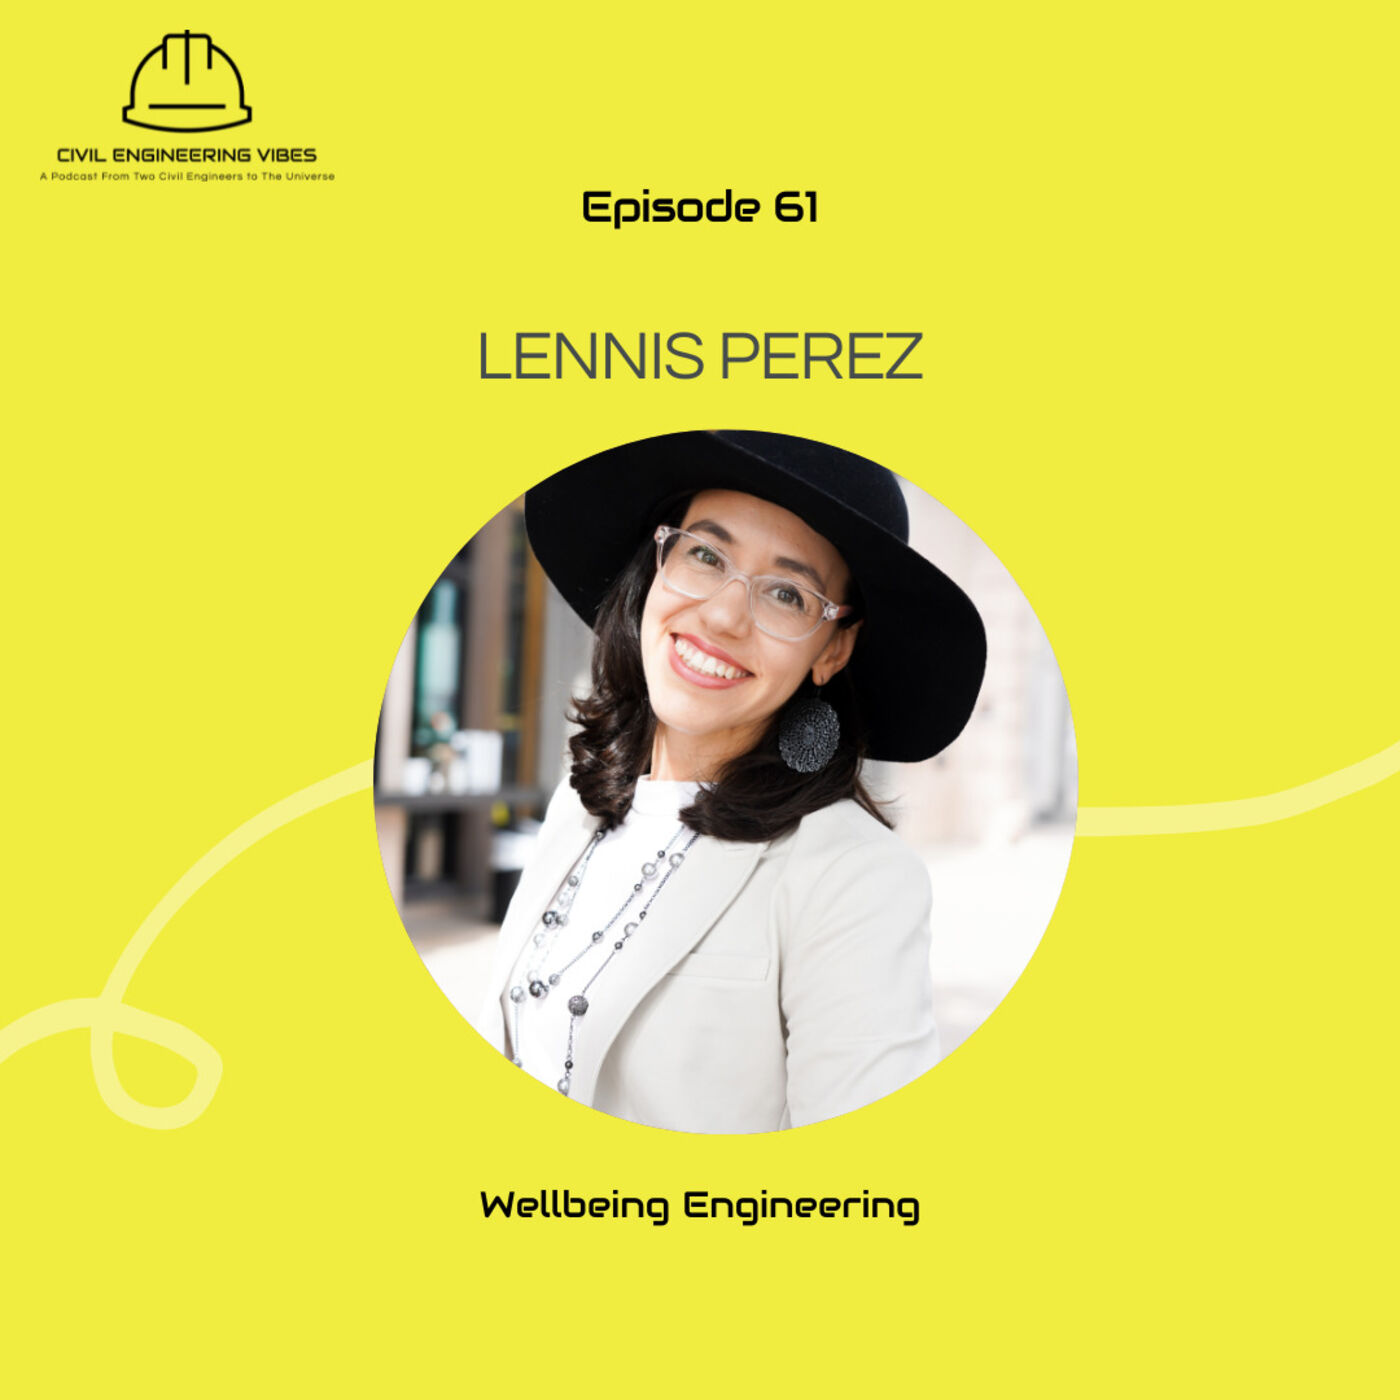 Wellbeing Engineering with Lennis Perez